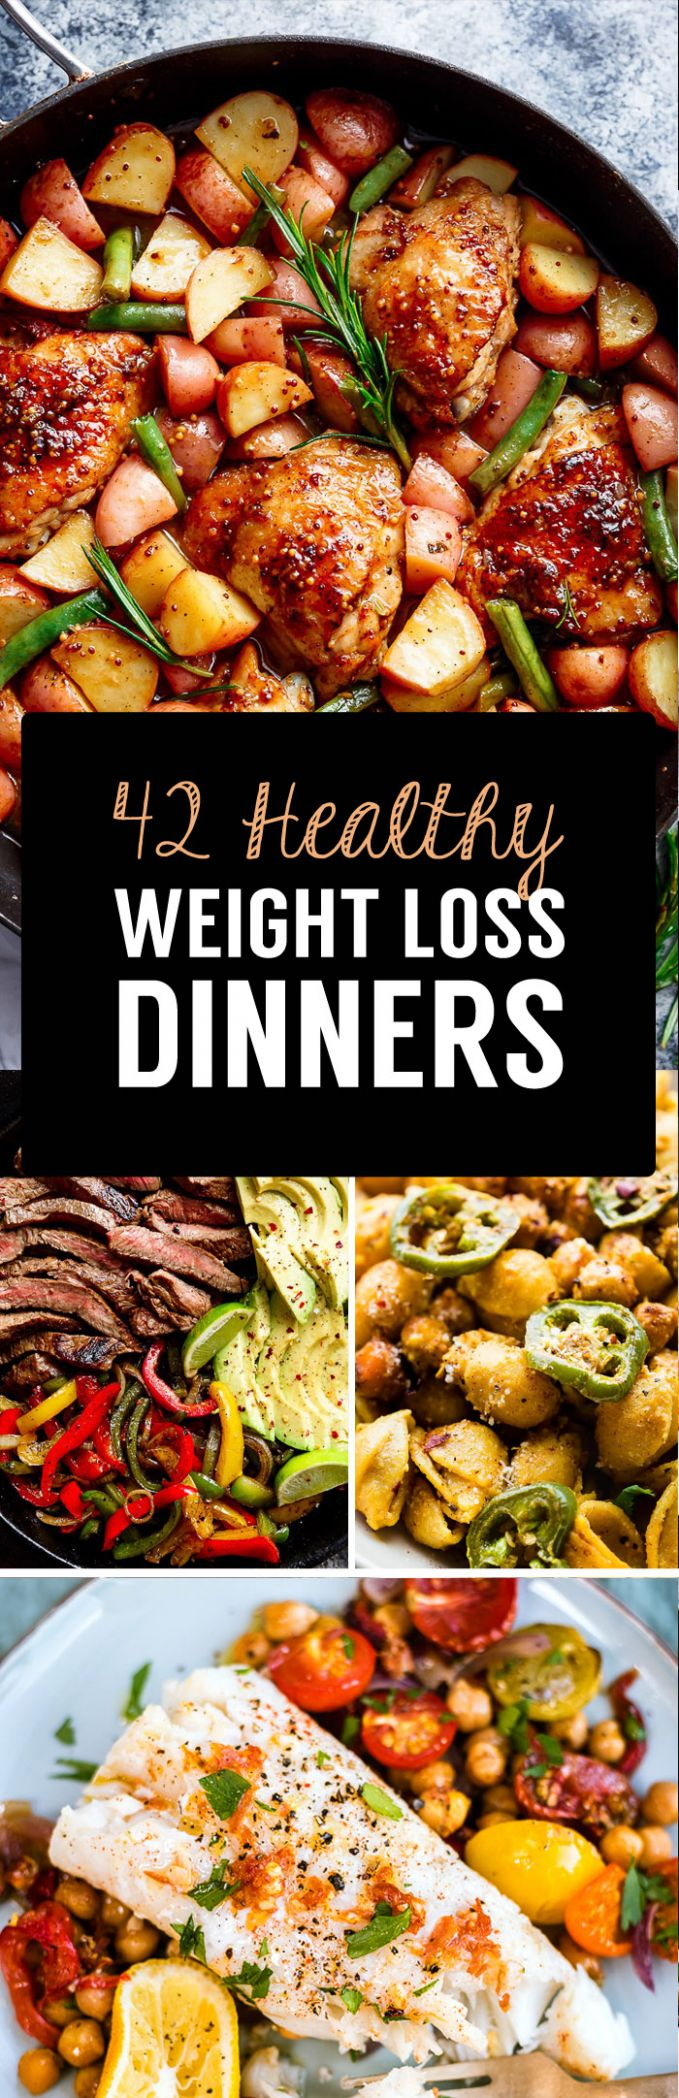 8 Weight Loss Dinner Recipes That Will Help You Shrink Belly Fat ..